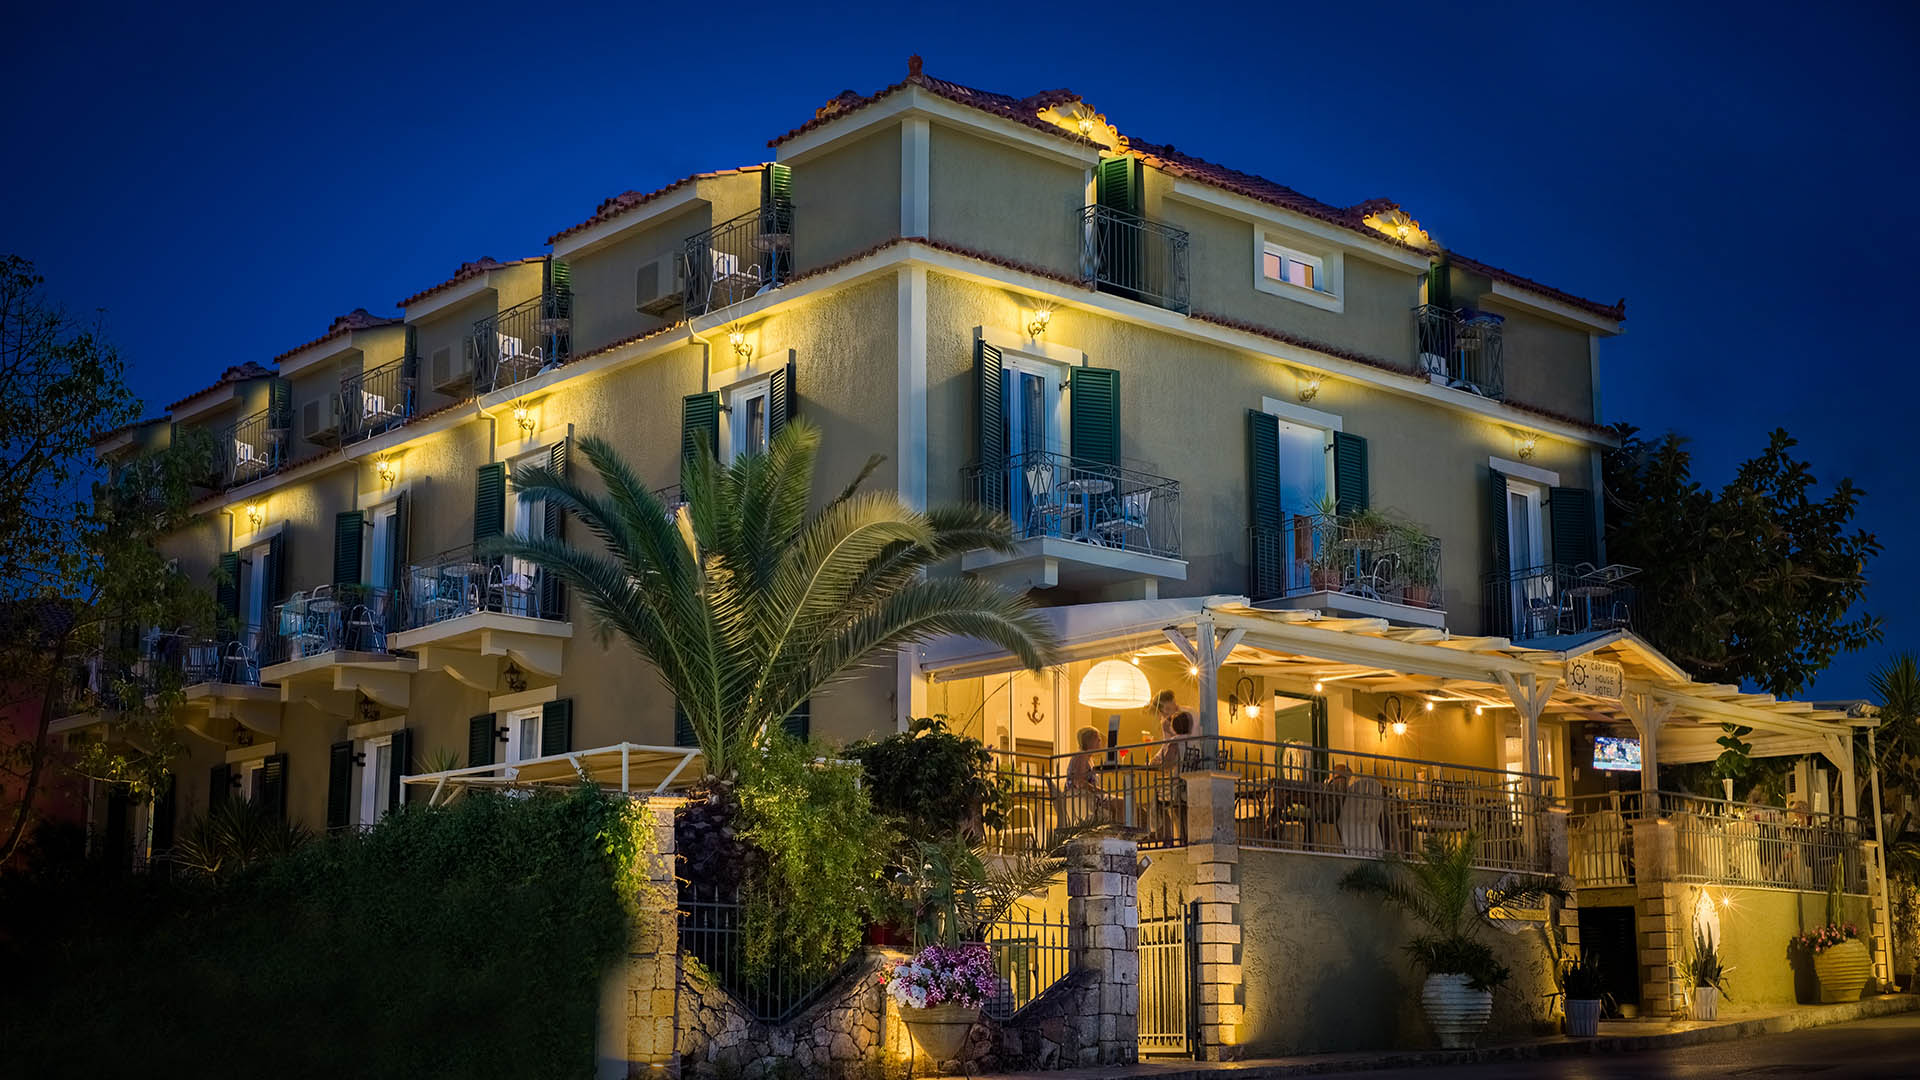 Captains House Hotel Skala Kefalonia Island